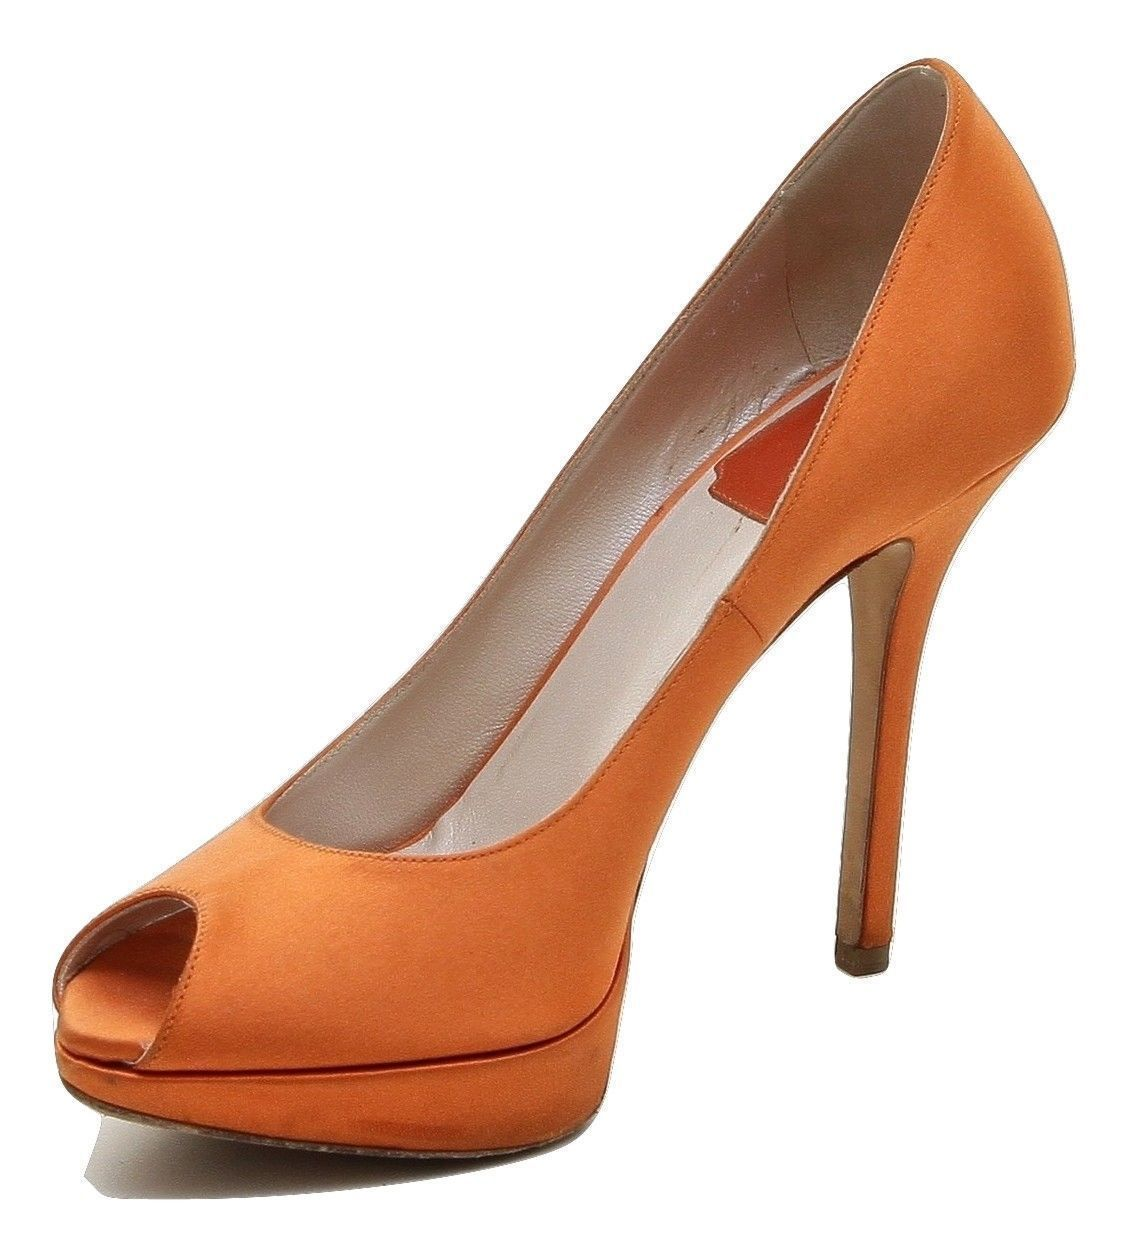 1b60be9dd1ce CHRISTIAN DIOR Pump Platform Orange Satin Leather Peep Toe Gold HW 37.5